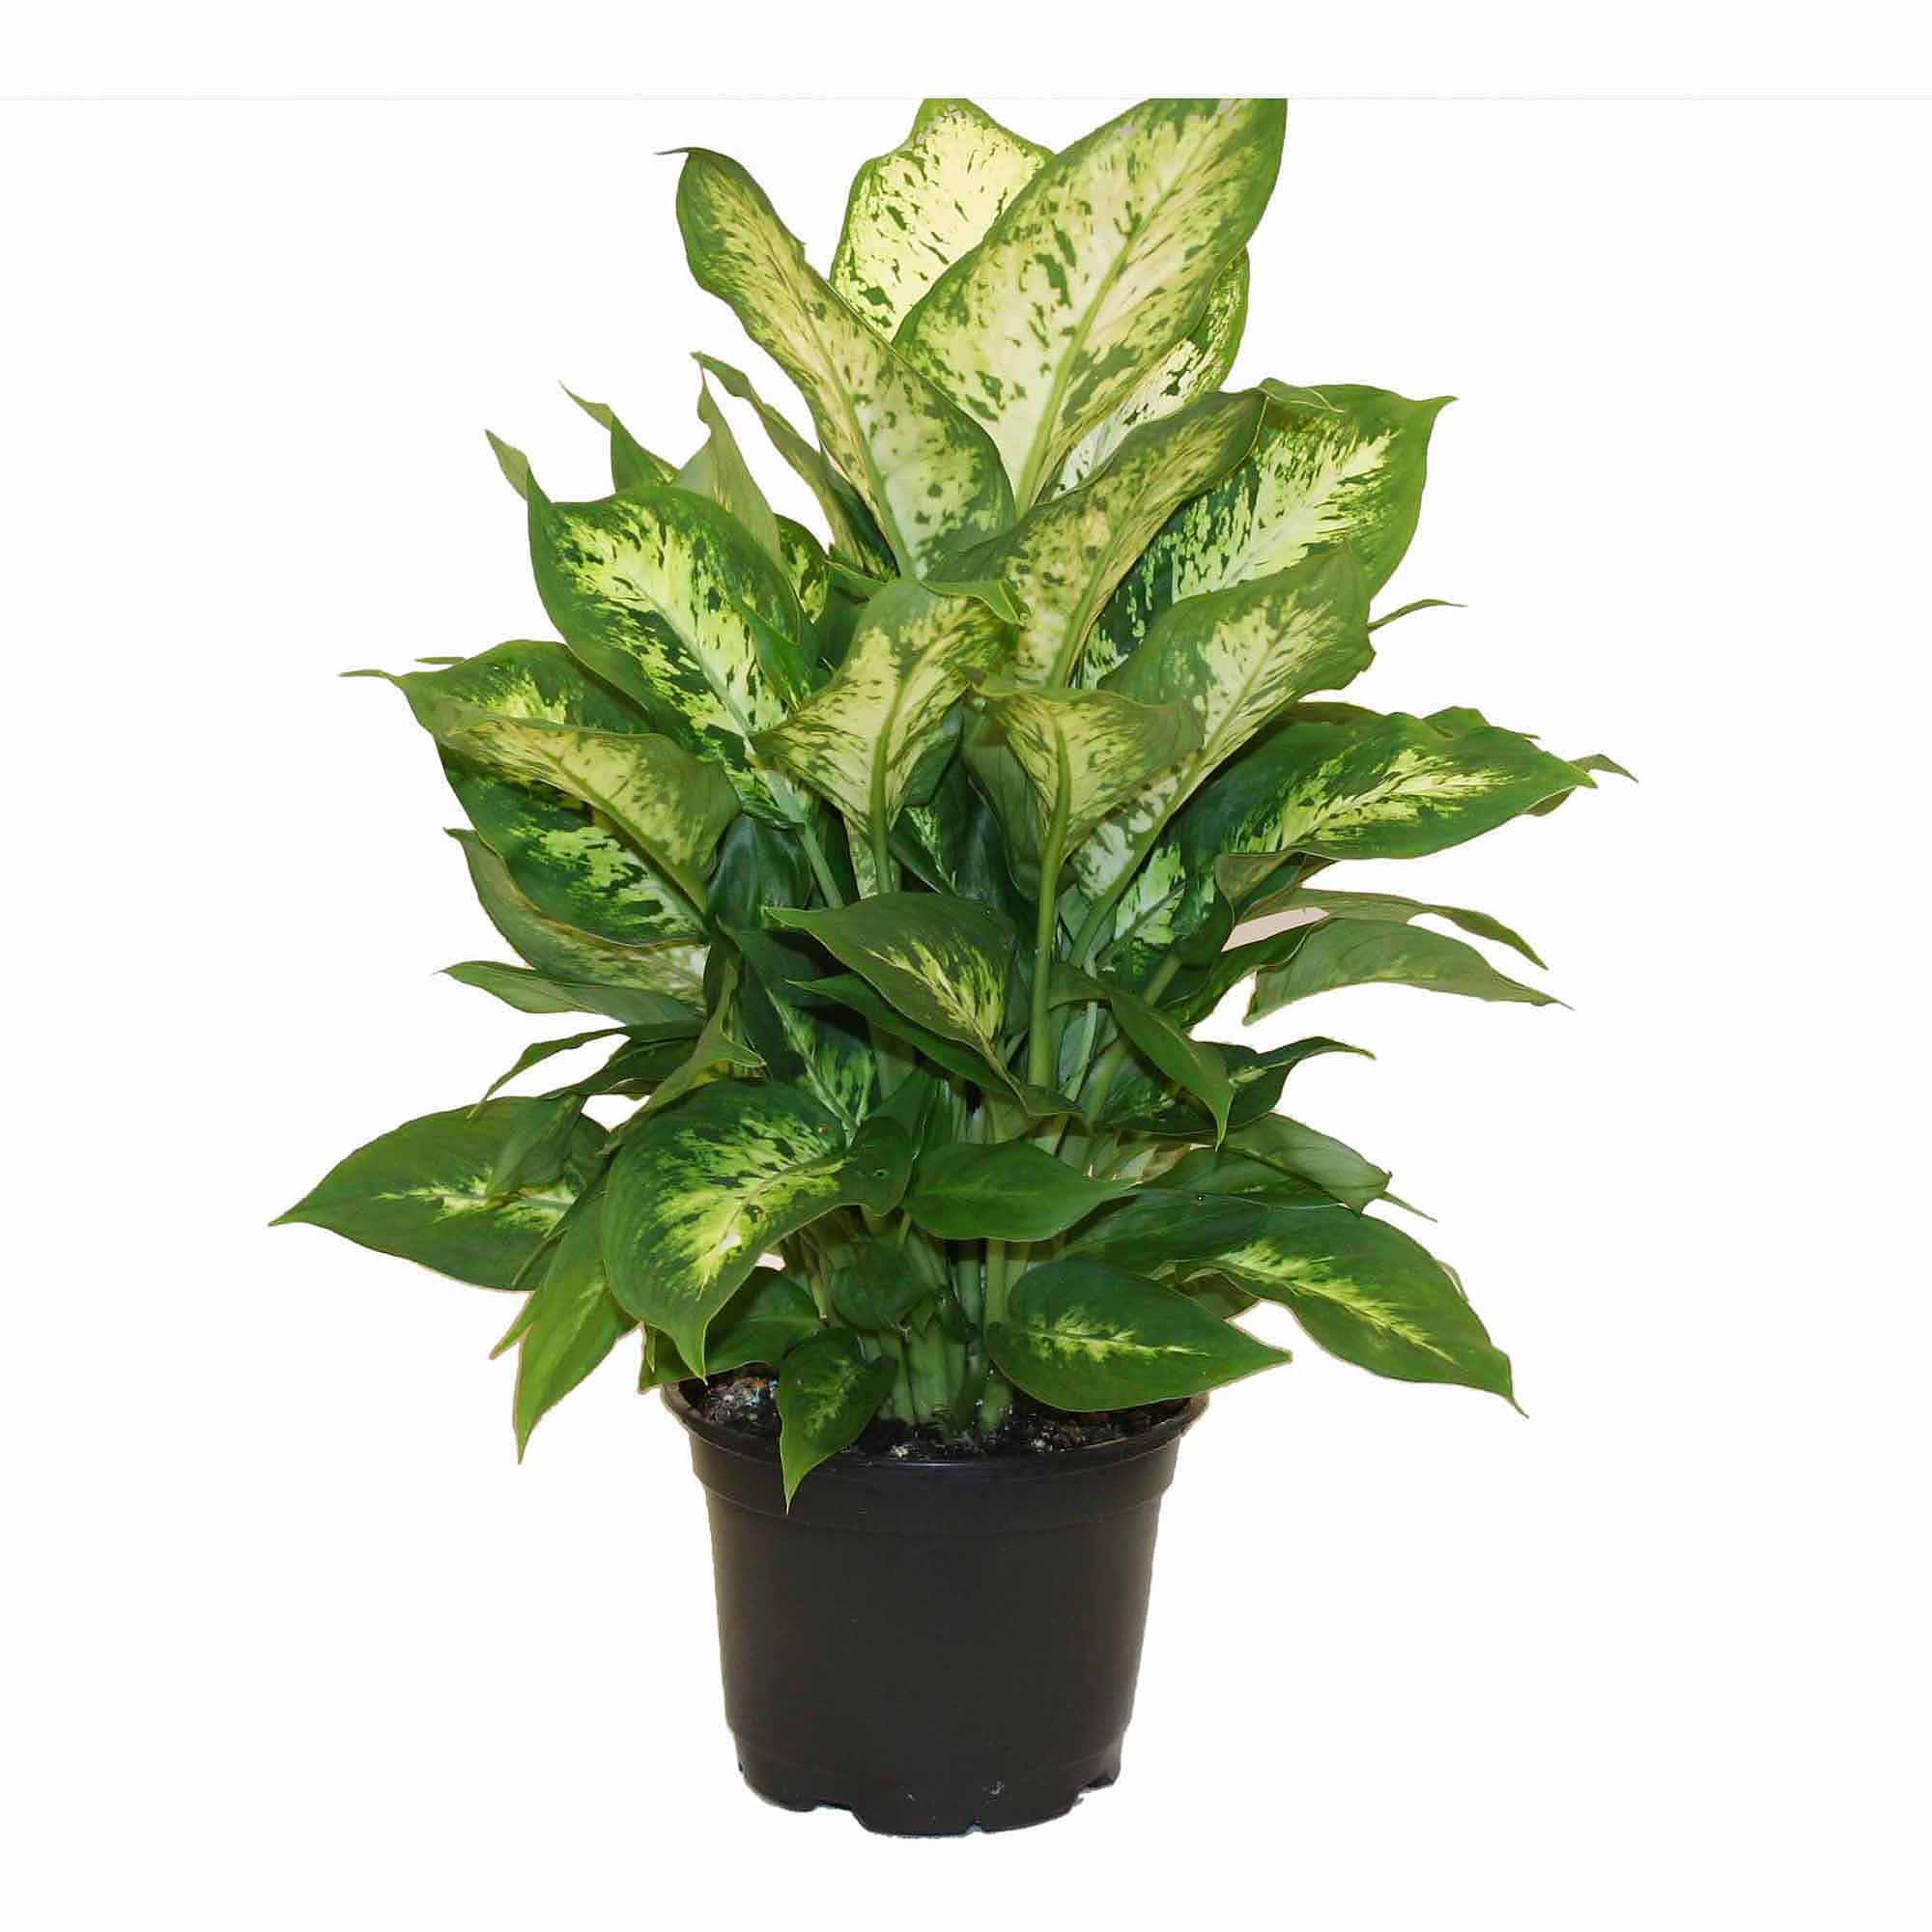 Delray Plants Live Dieffenbachia Plant in 6 inch Grower Pot